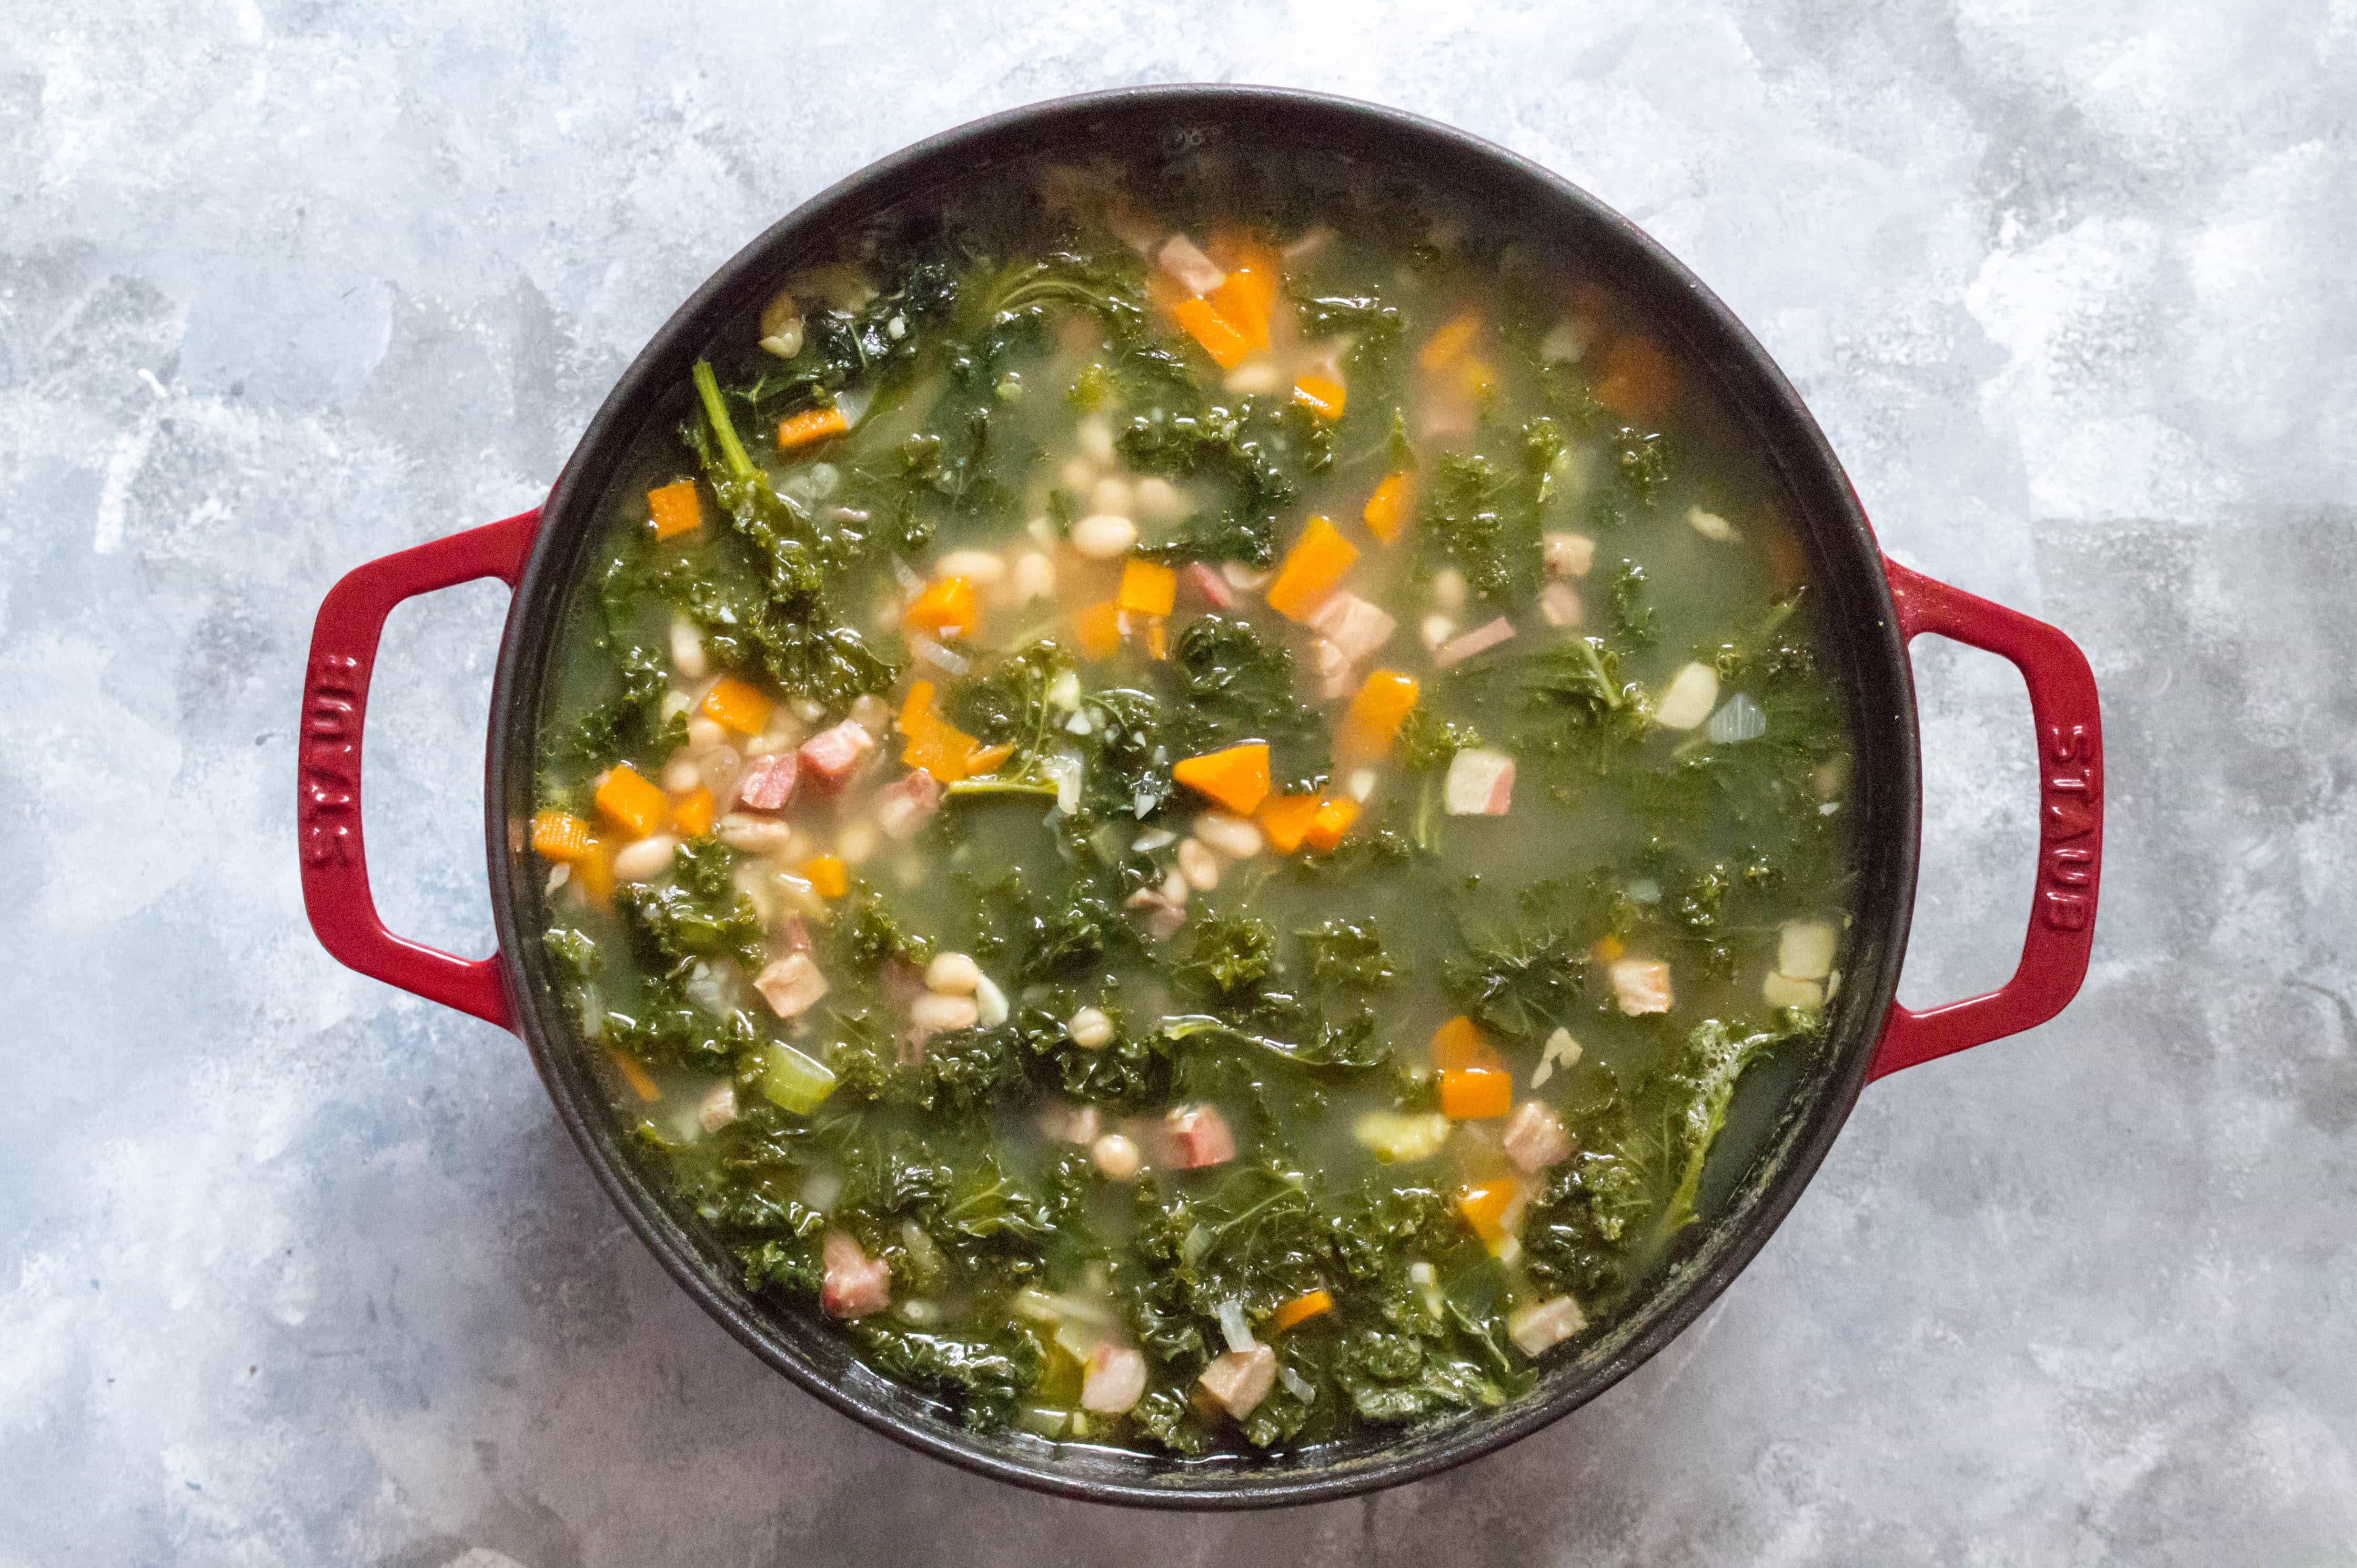 Tuscan White Bean, Kale, Pancetta, and Polenta Soup in a Staub